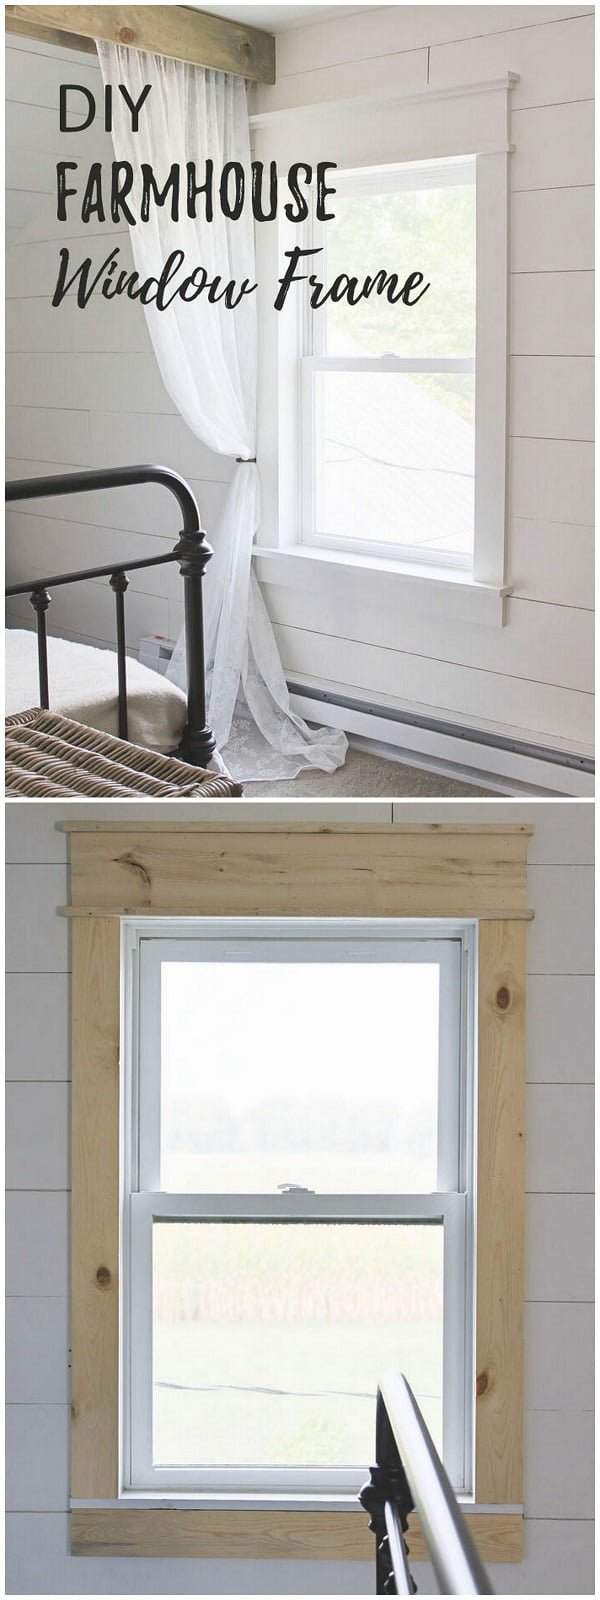 Check out this easy idea on how to make a #DIY #farmhouse window trim #homedecor